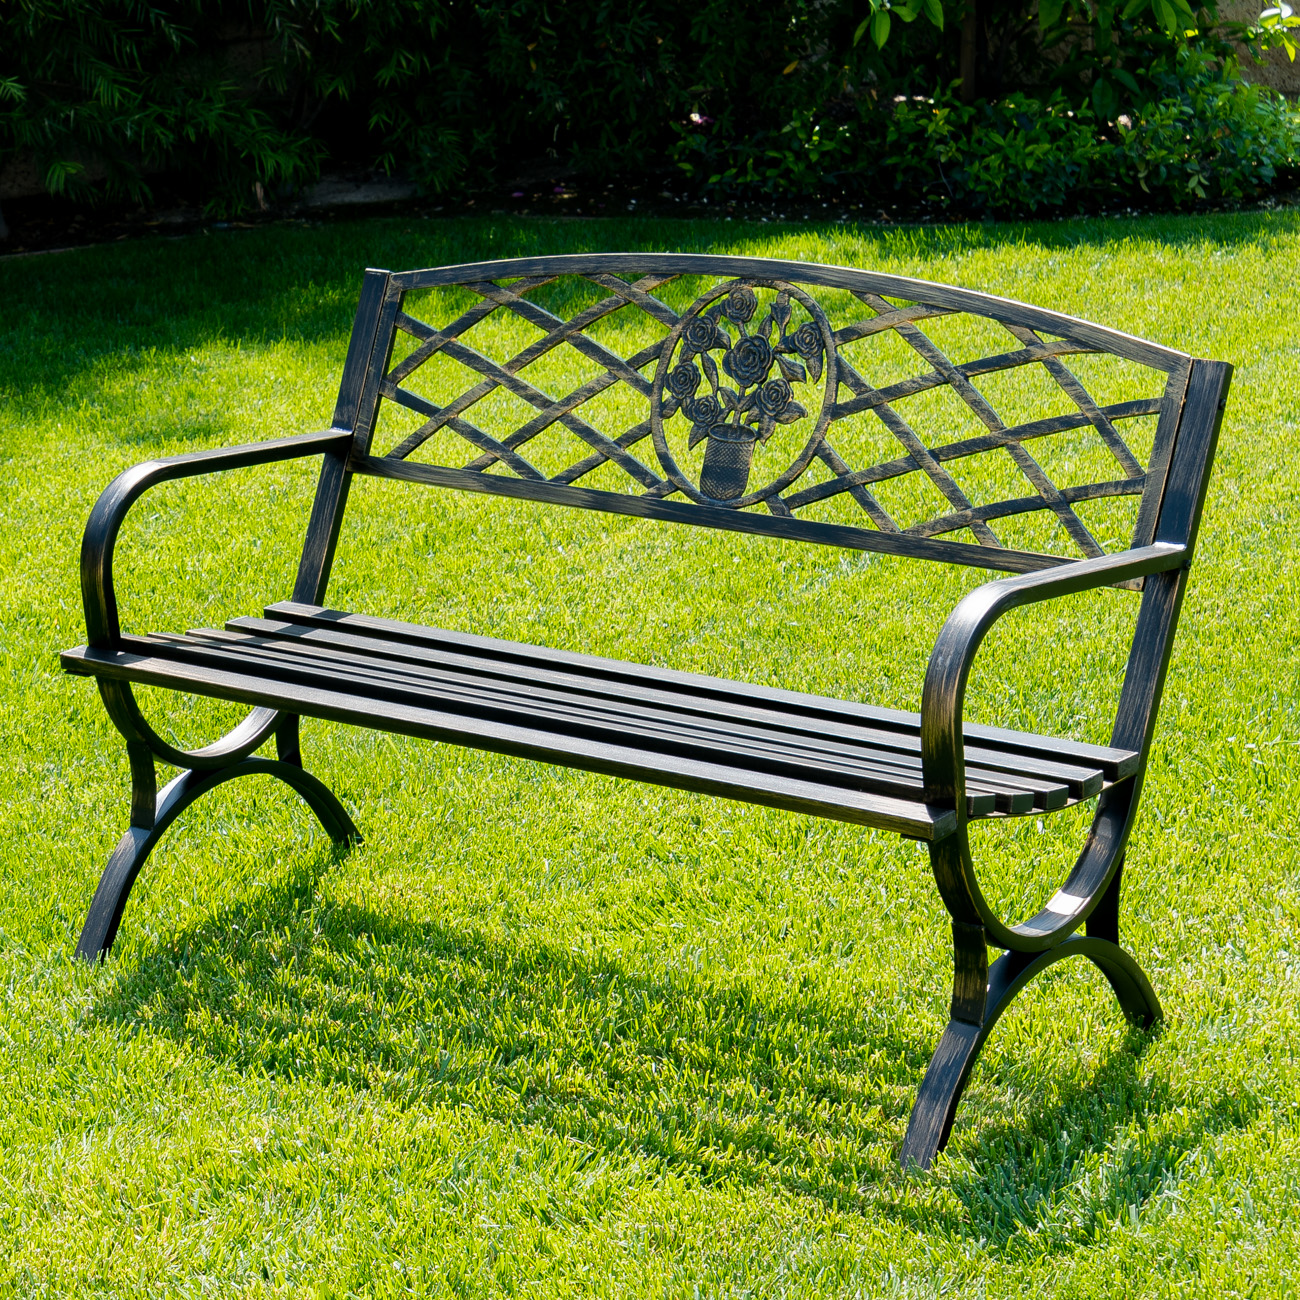 metal outdoor furniture outdoor bench patio chair metal garden furniture deck 30614